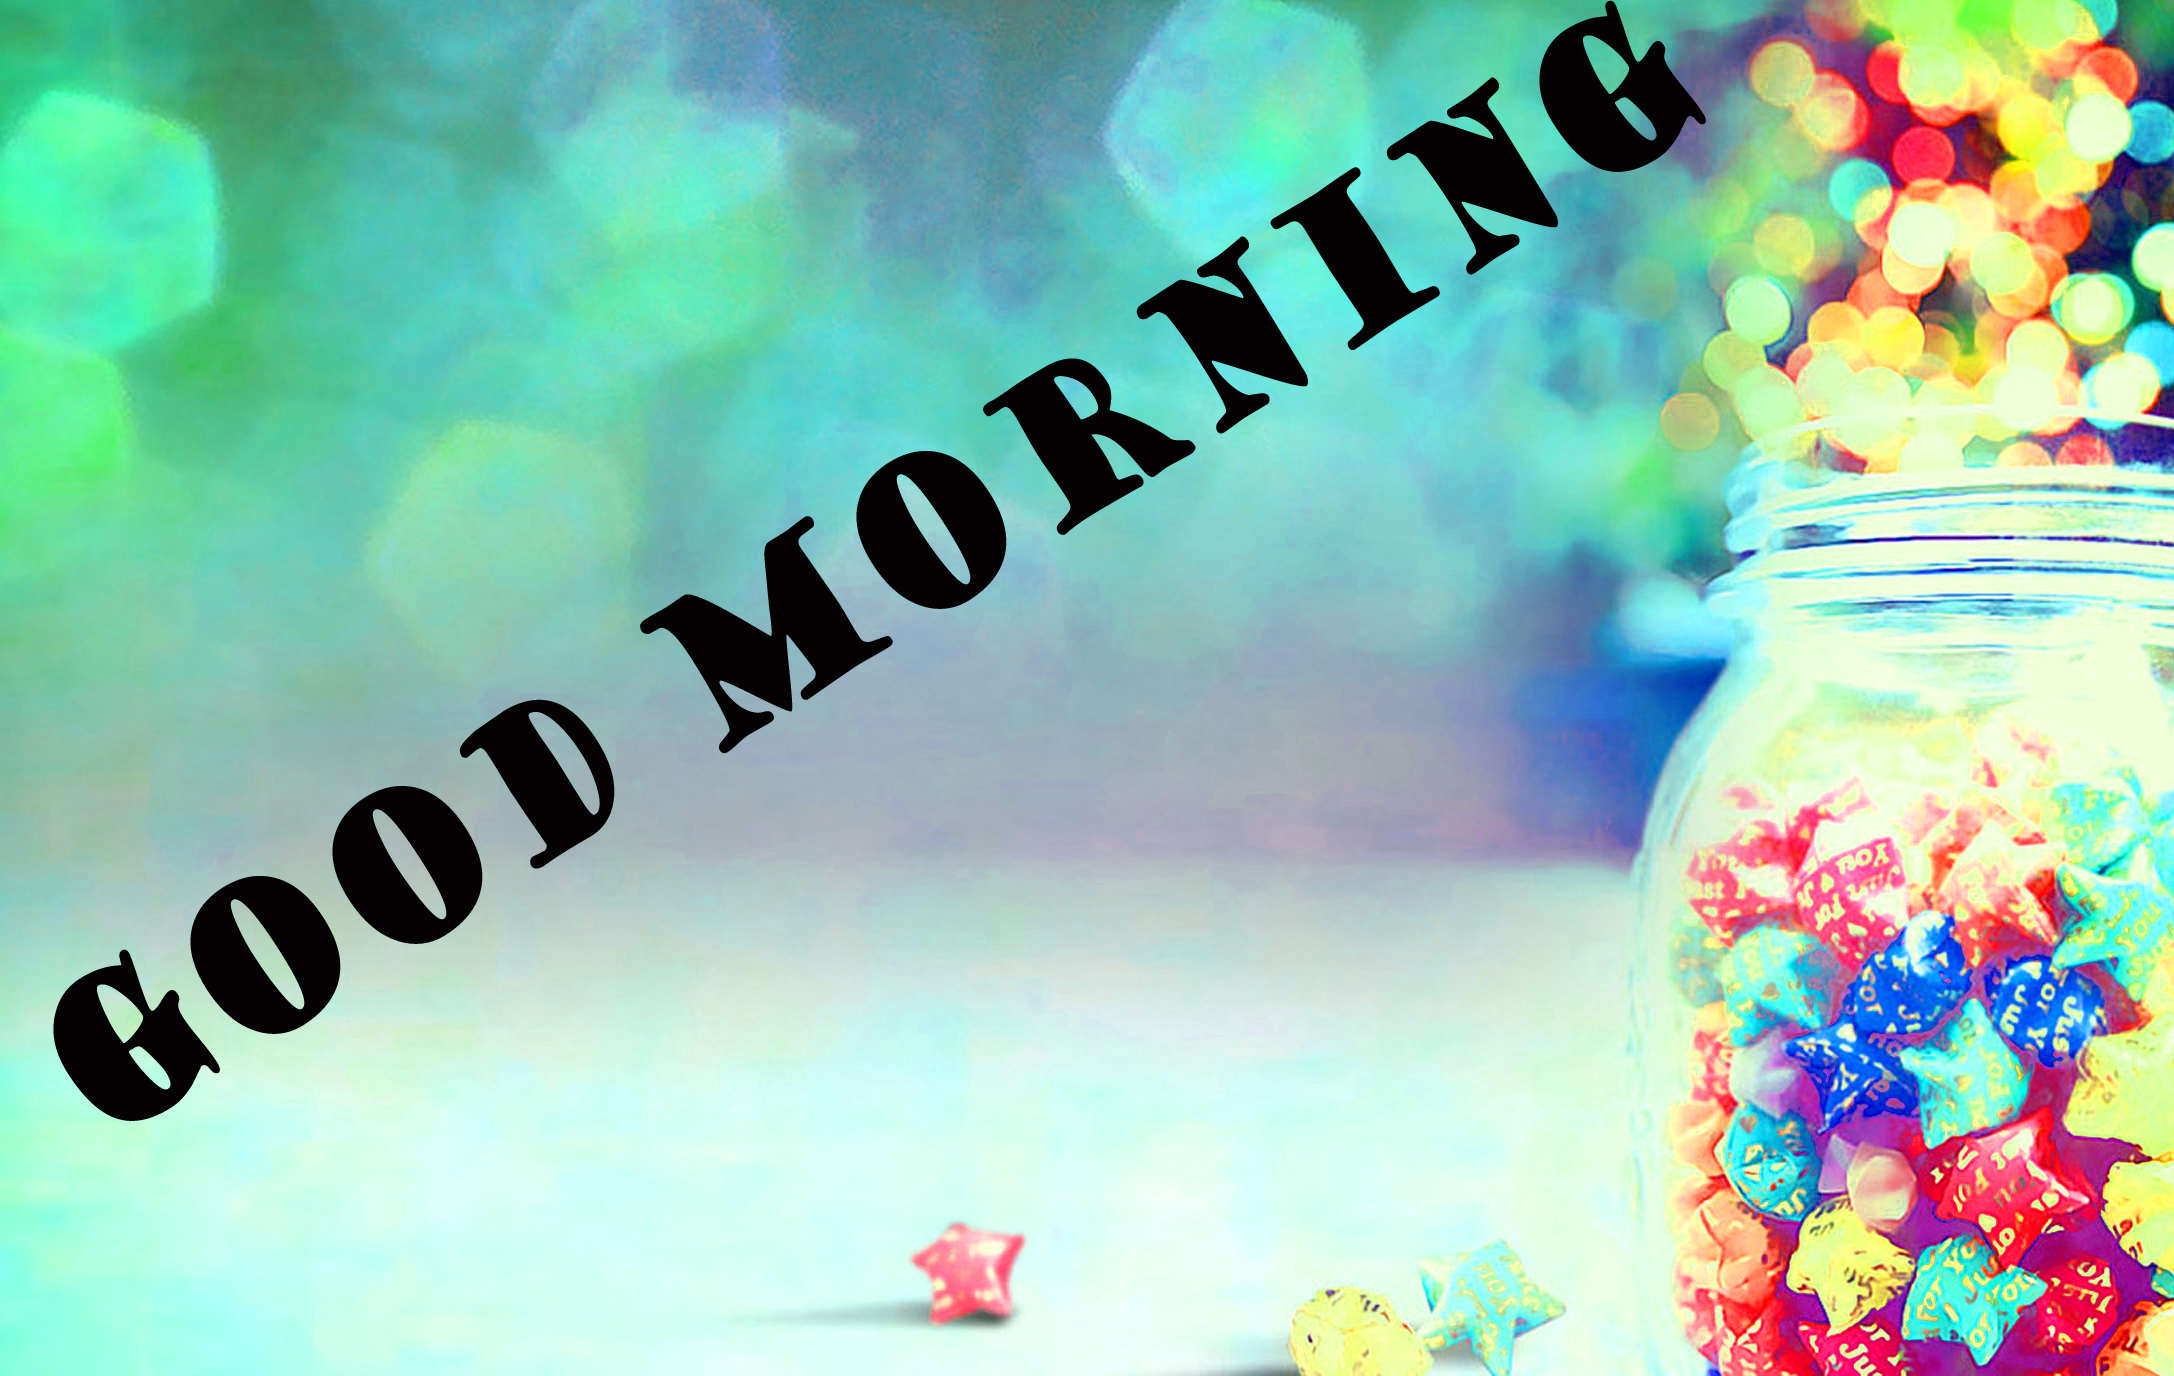 गुड मॉर्निंग New Wonderful Good Morning Wallpaper Pictures For Facebook